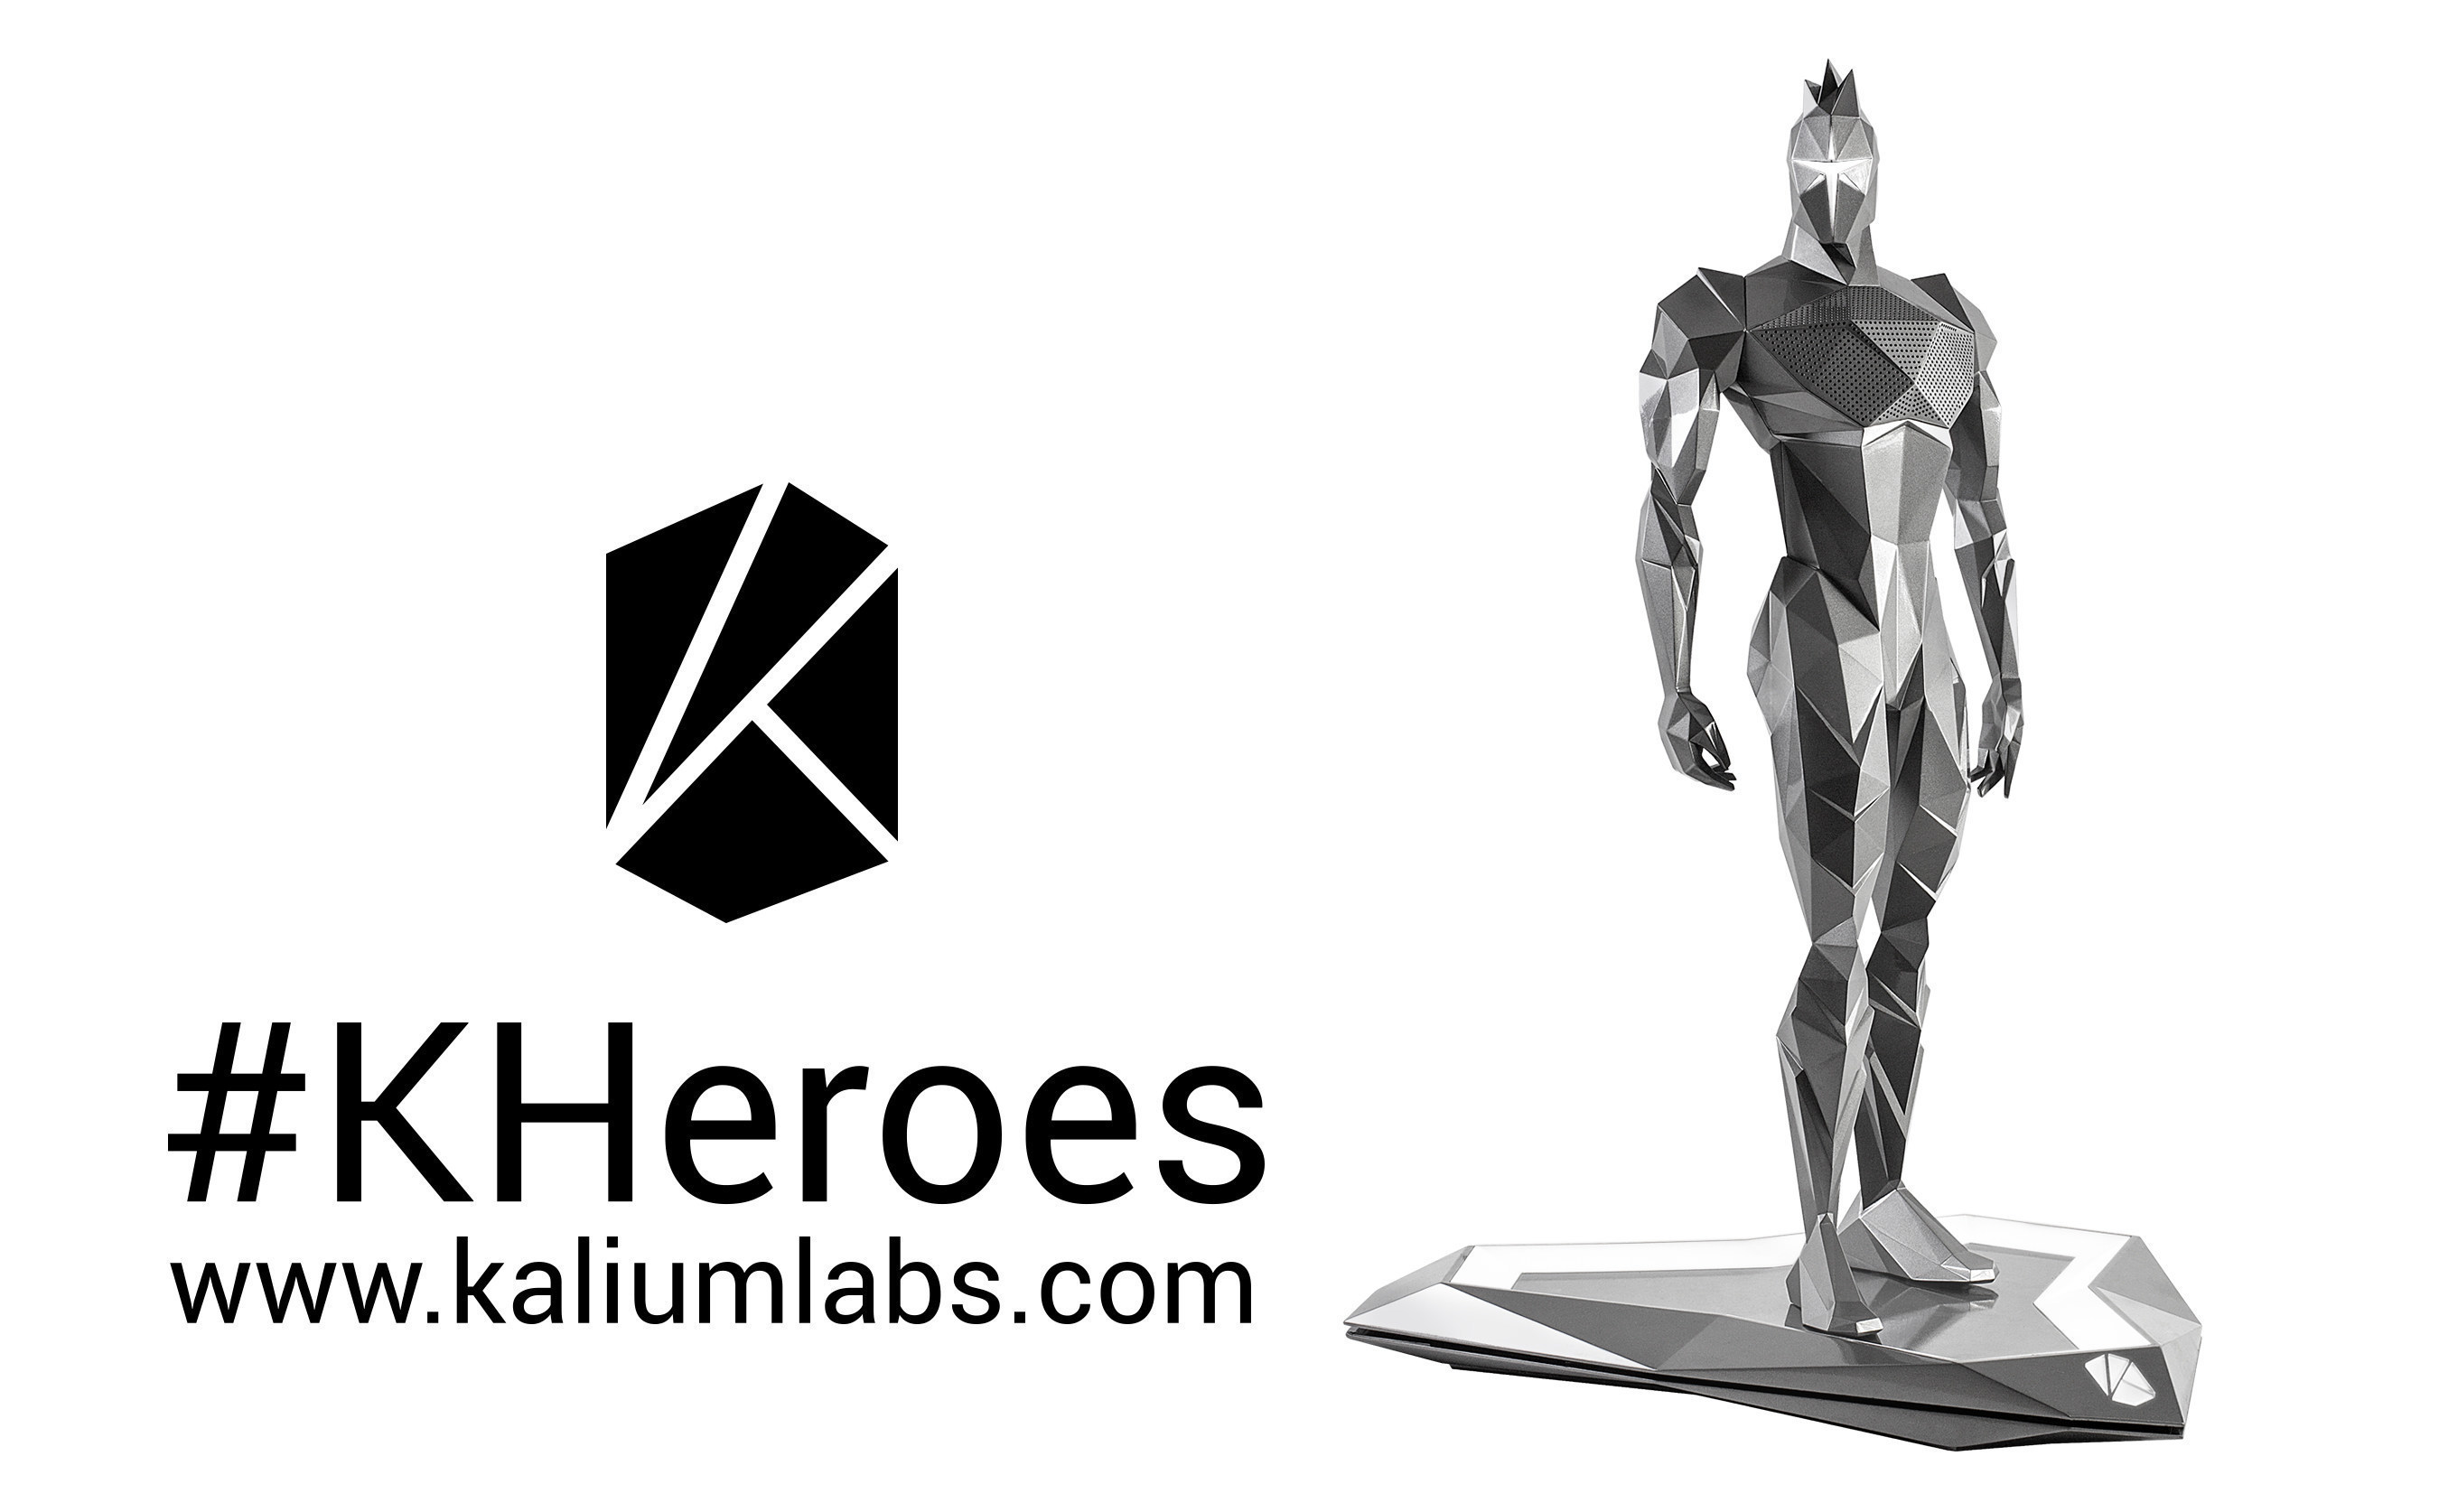 The new K Heroes character Bluetooth speaker from Kalium Labs